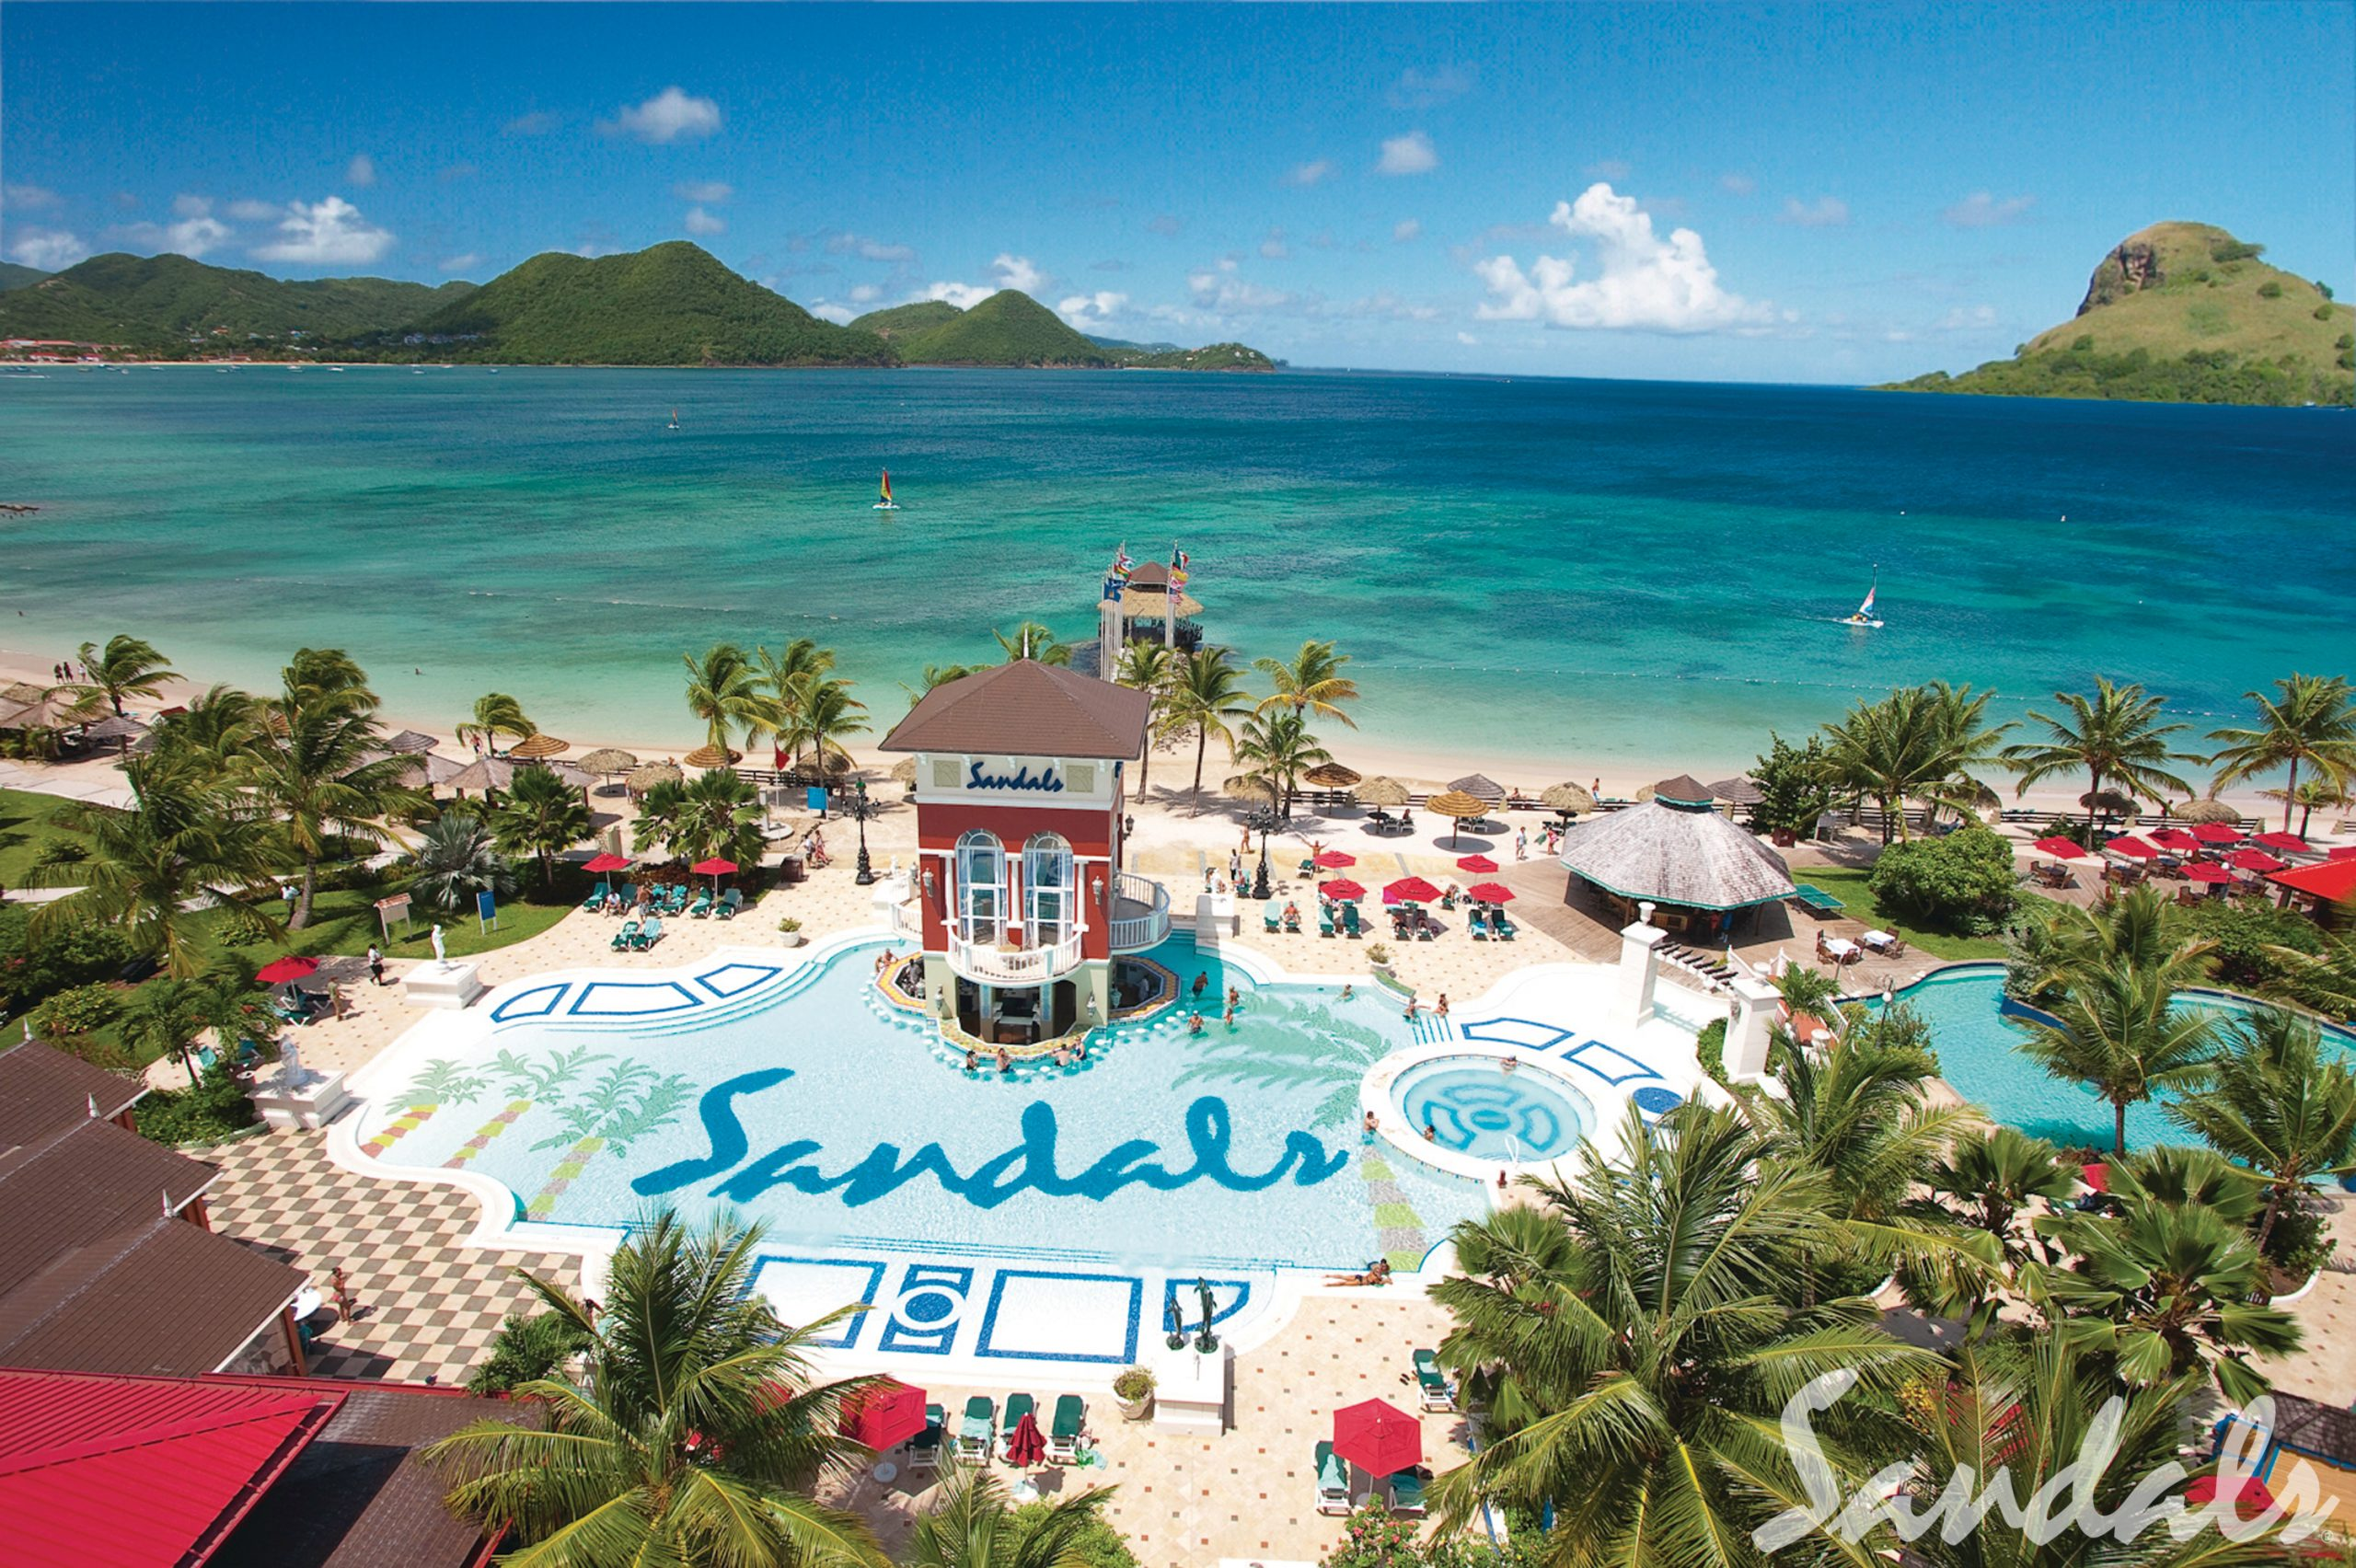 Sandals Grande St. Lucian is absolutely fabulous